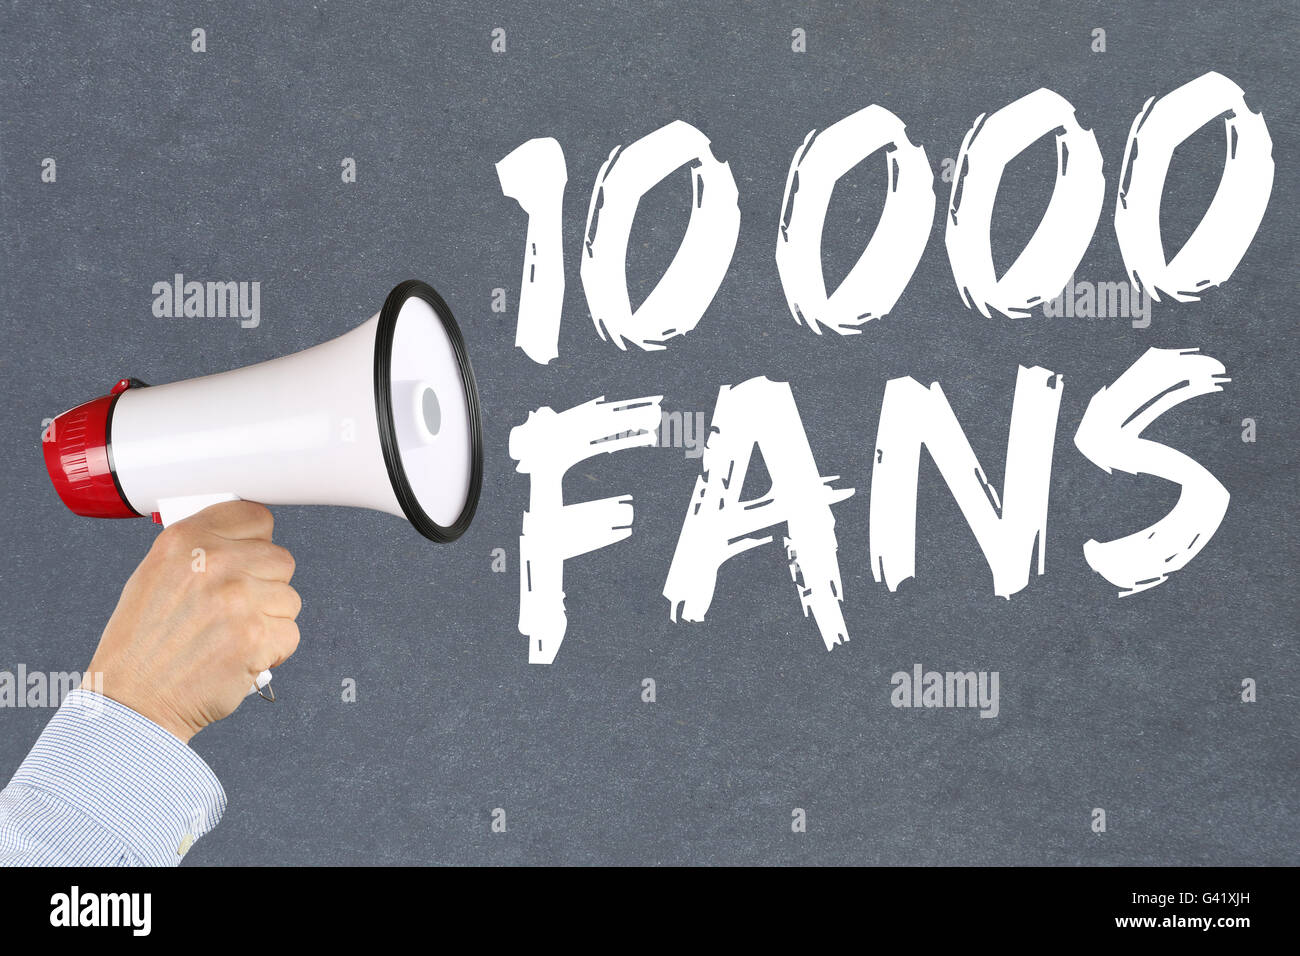 10000 fans likes social networking media part with megaphone Banque D'Images